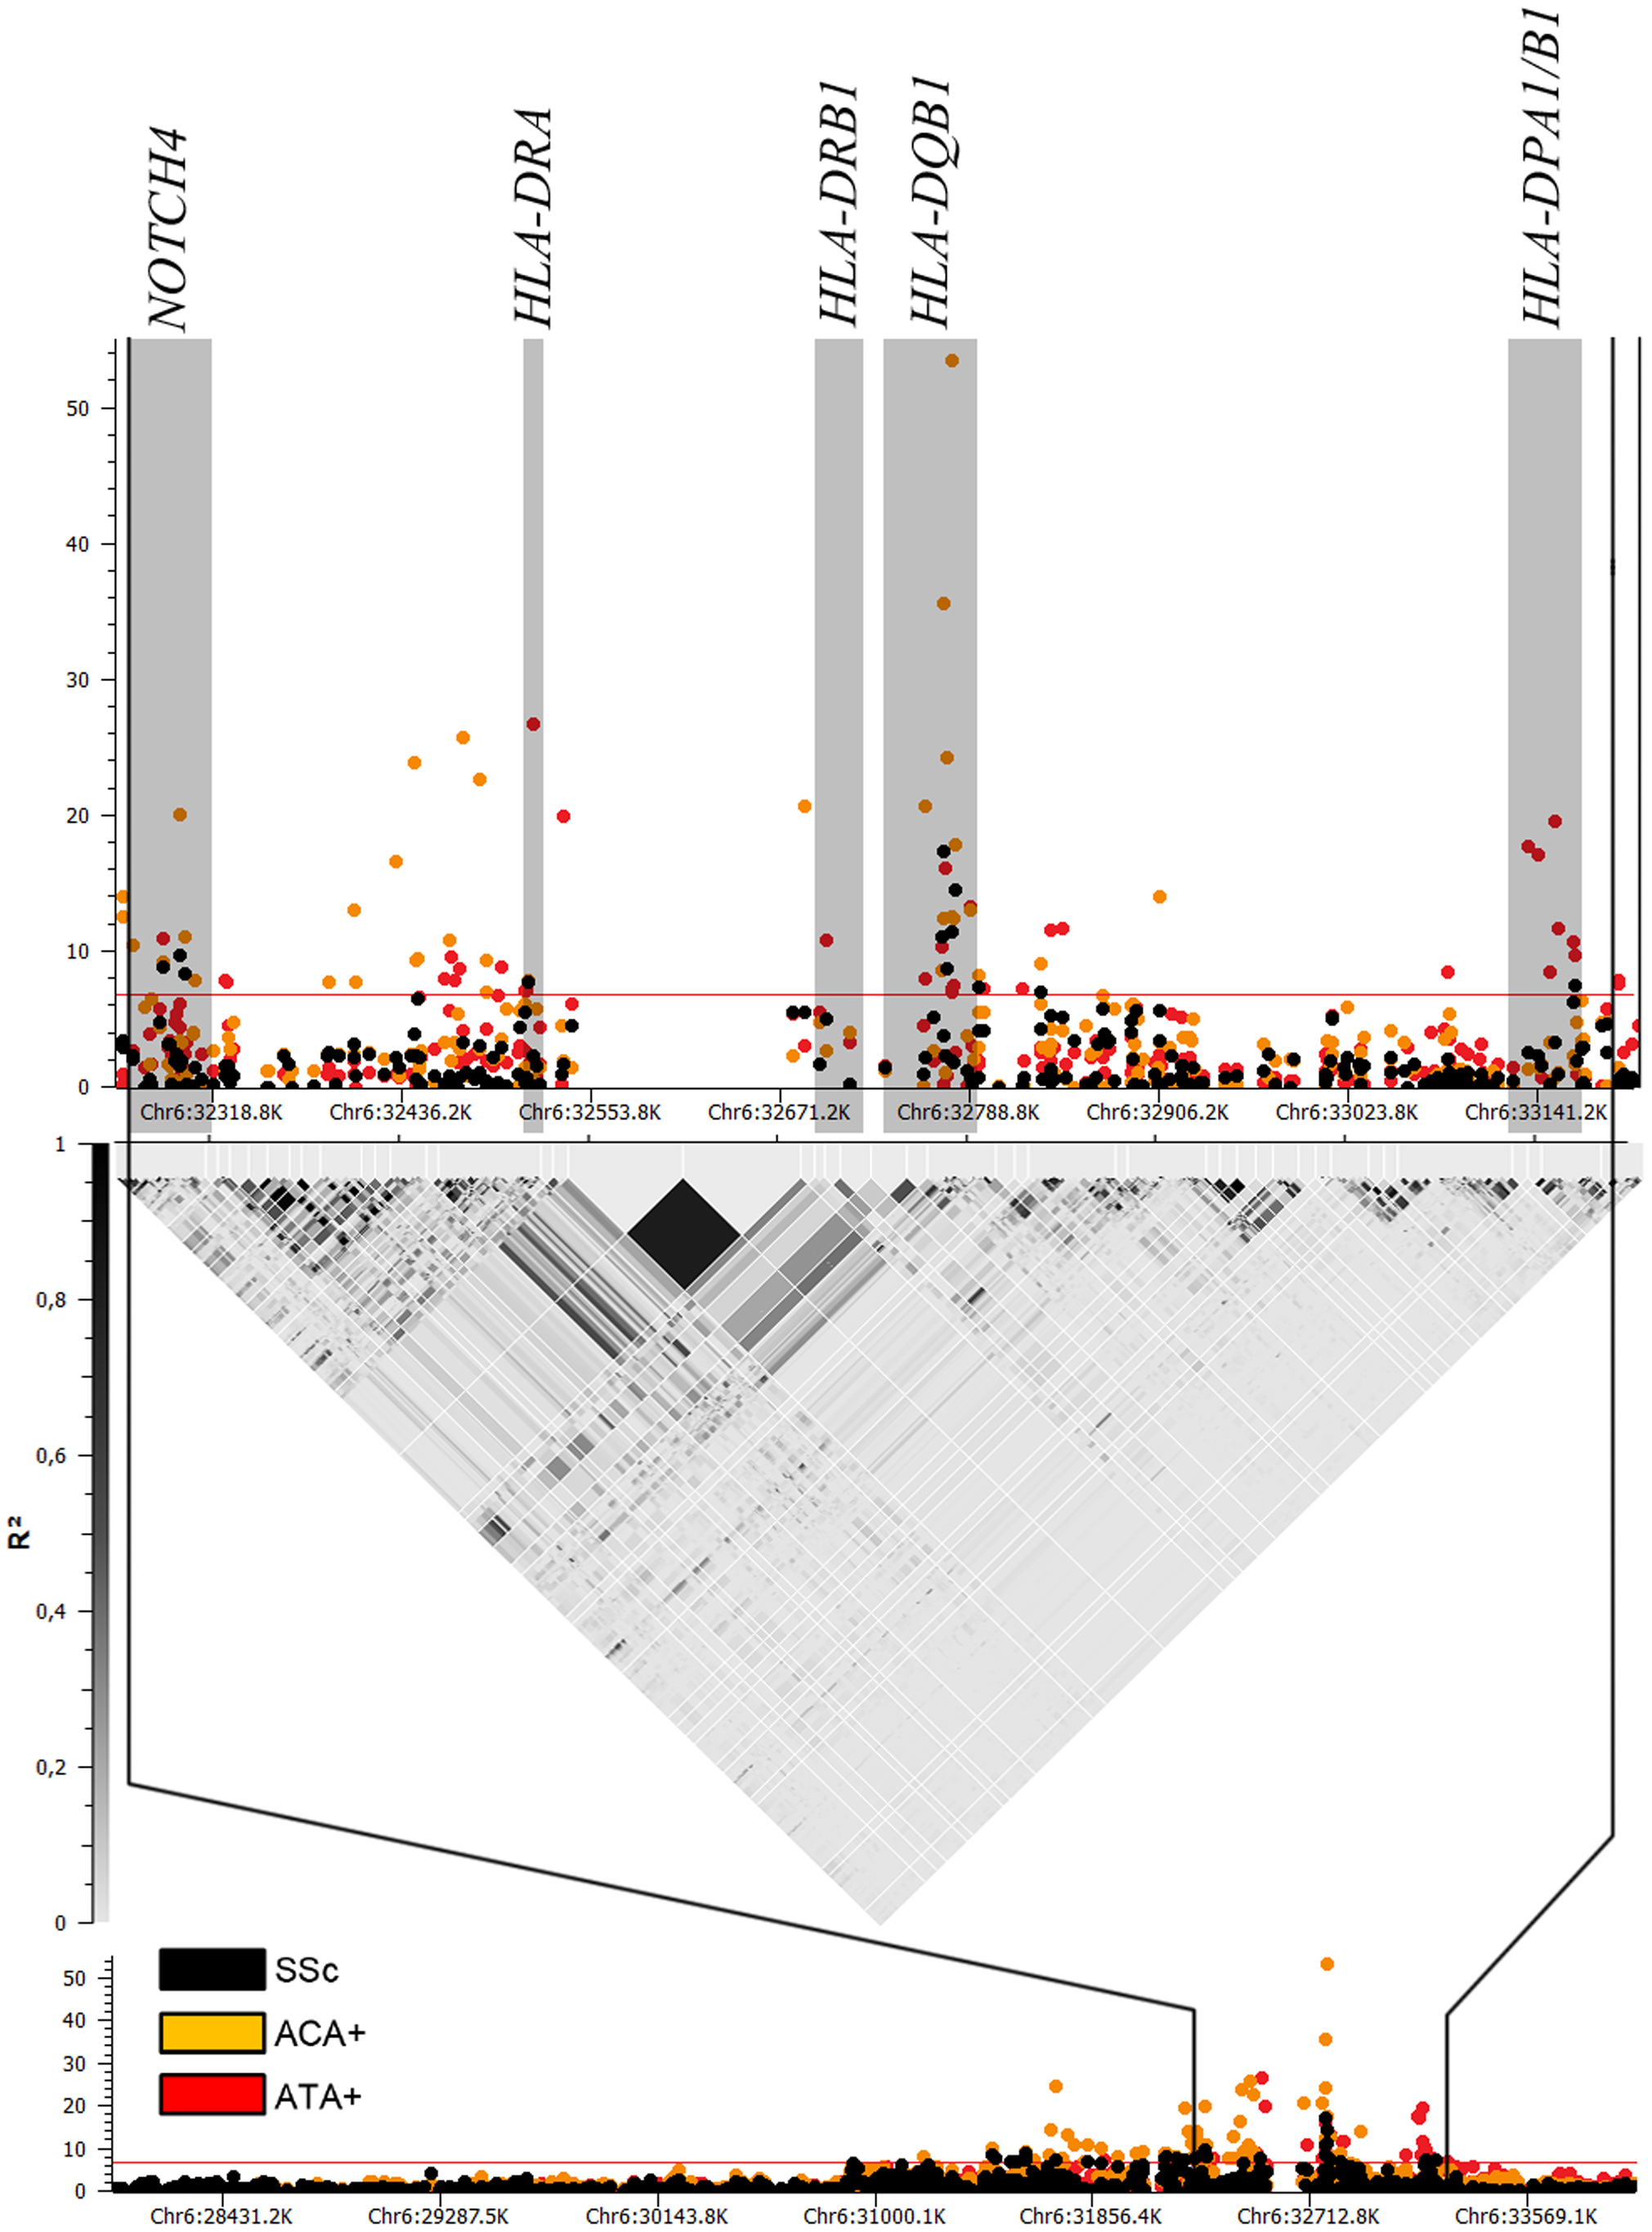 Manhattan plot showing the -log10 of the Mantel-Haenszel <i>P</i> value of all 1,112 SNPs in HLA region for the GWAS cohorts comprising 2,296 cases and 5,171 controls.